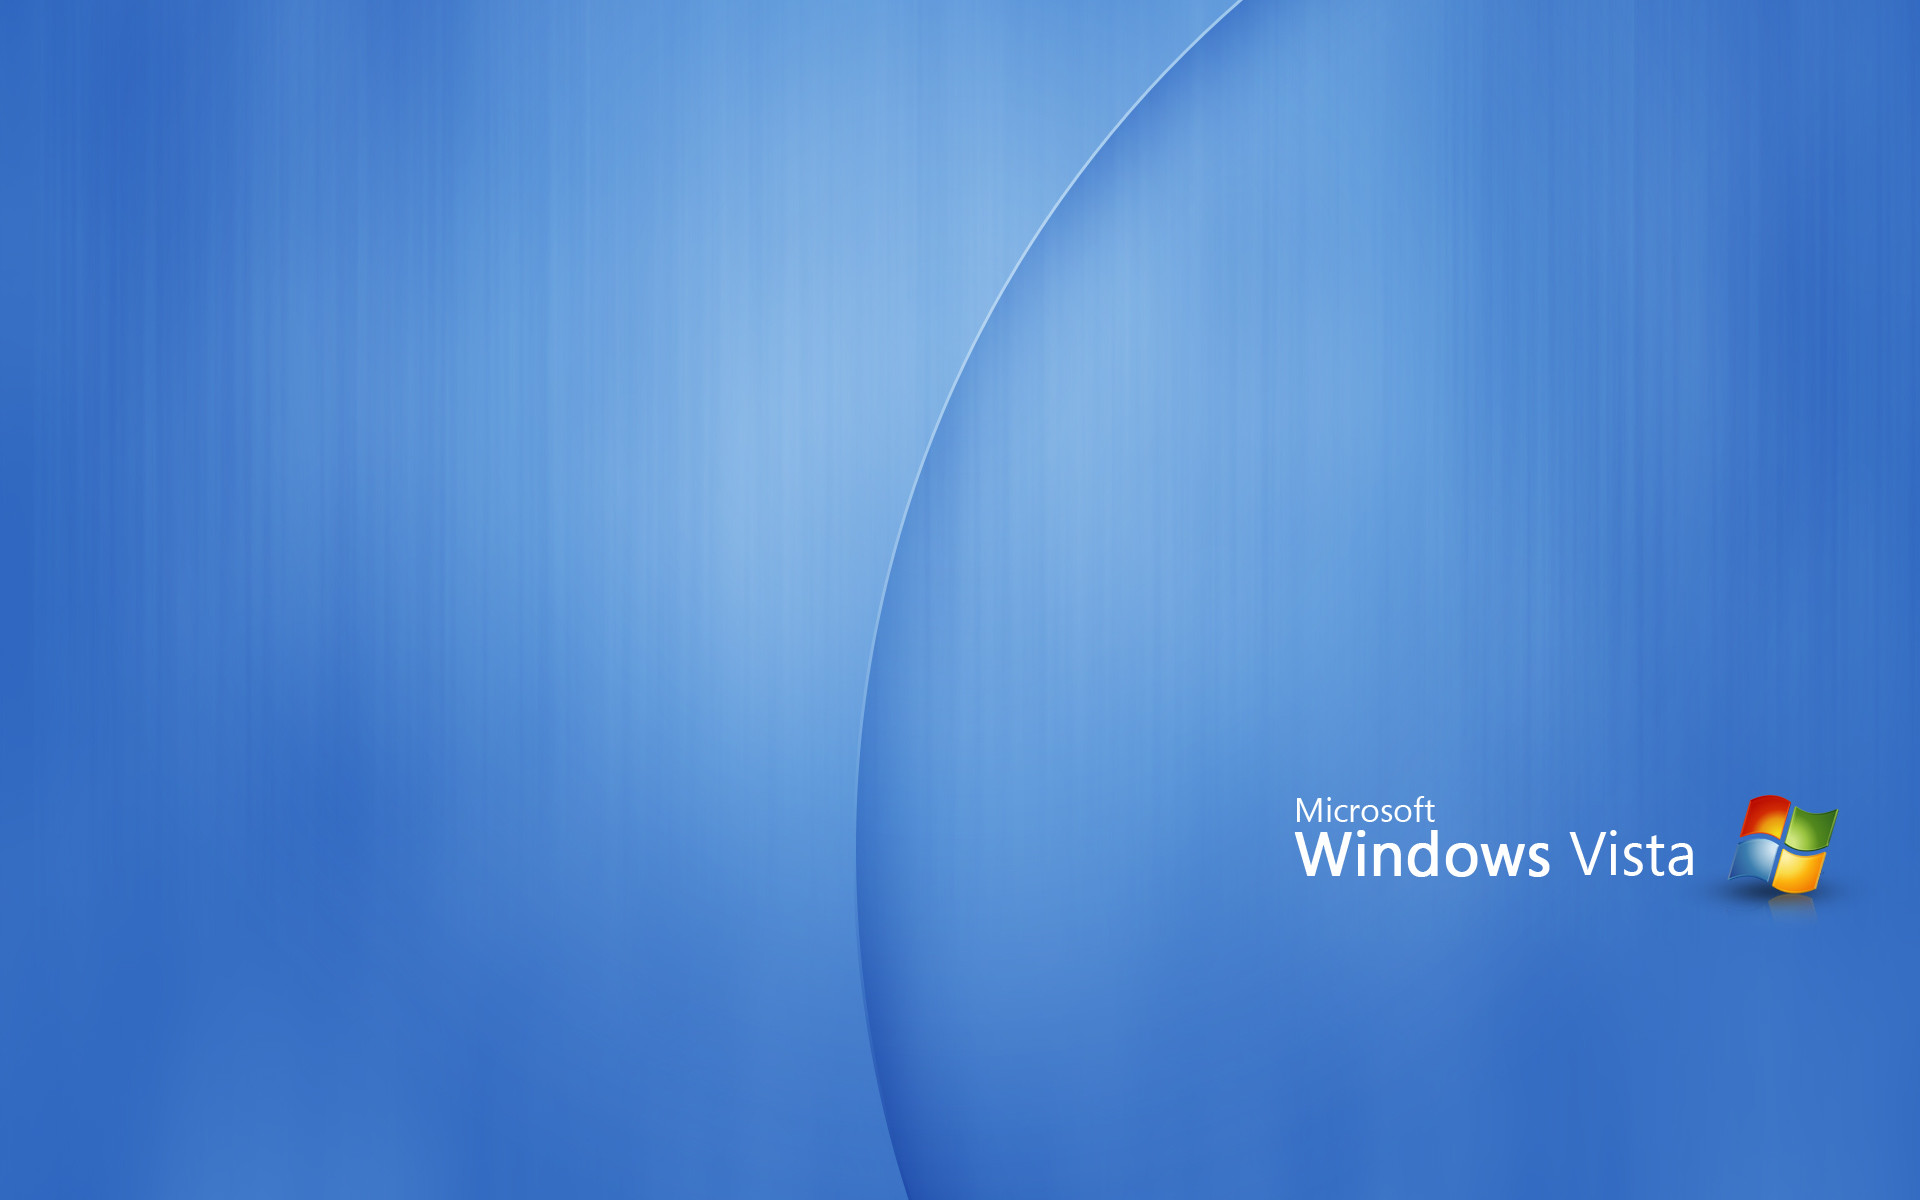 1920x1200 free wallpaper and screensavers by microsoft